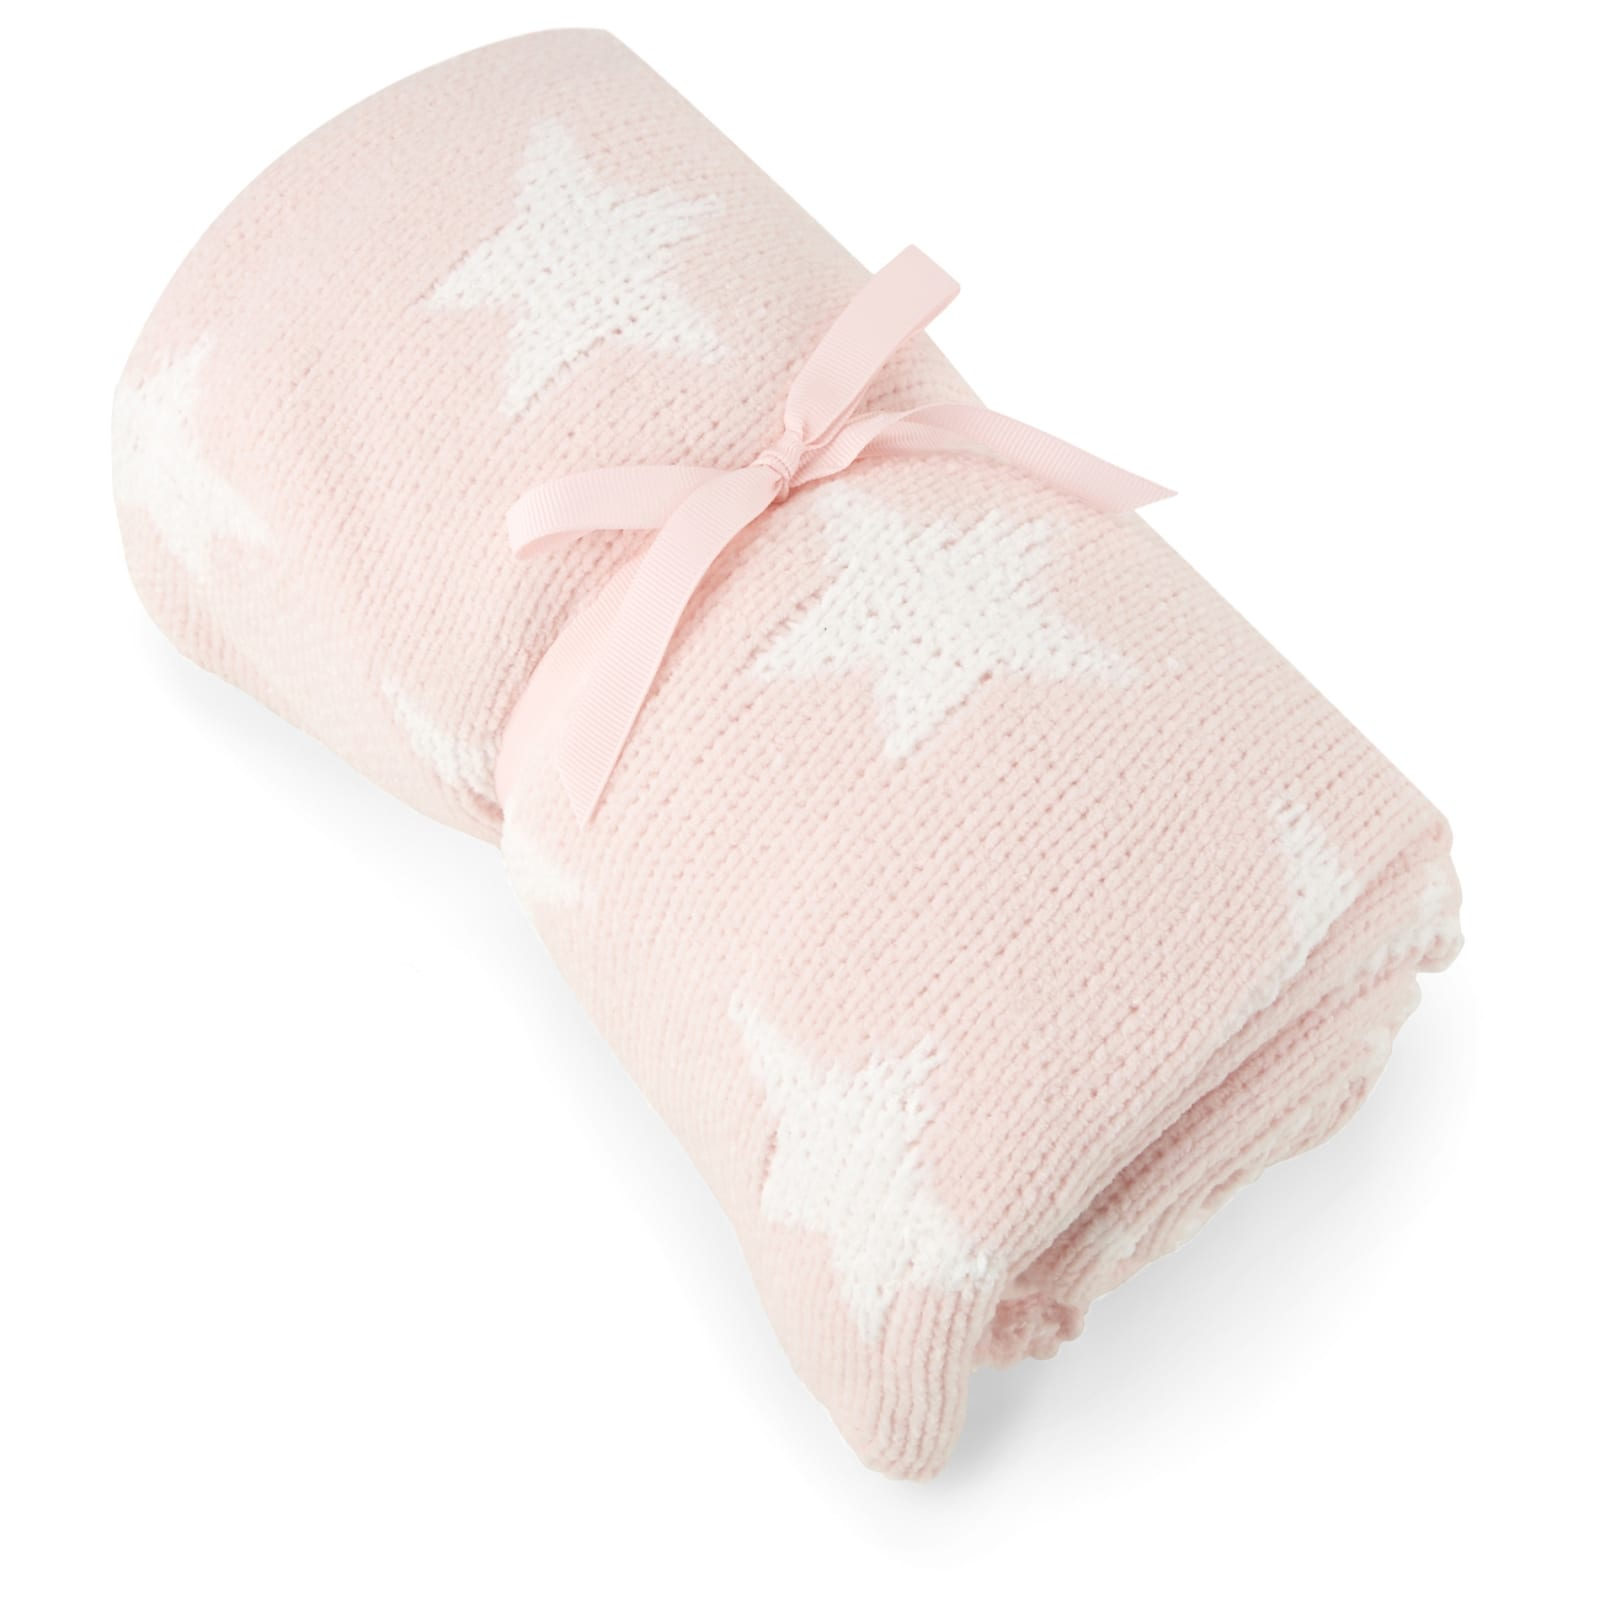 Chenille Blanket – Pink Star product image